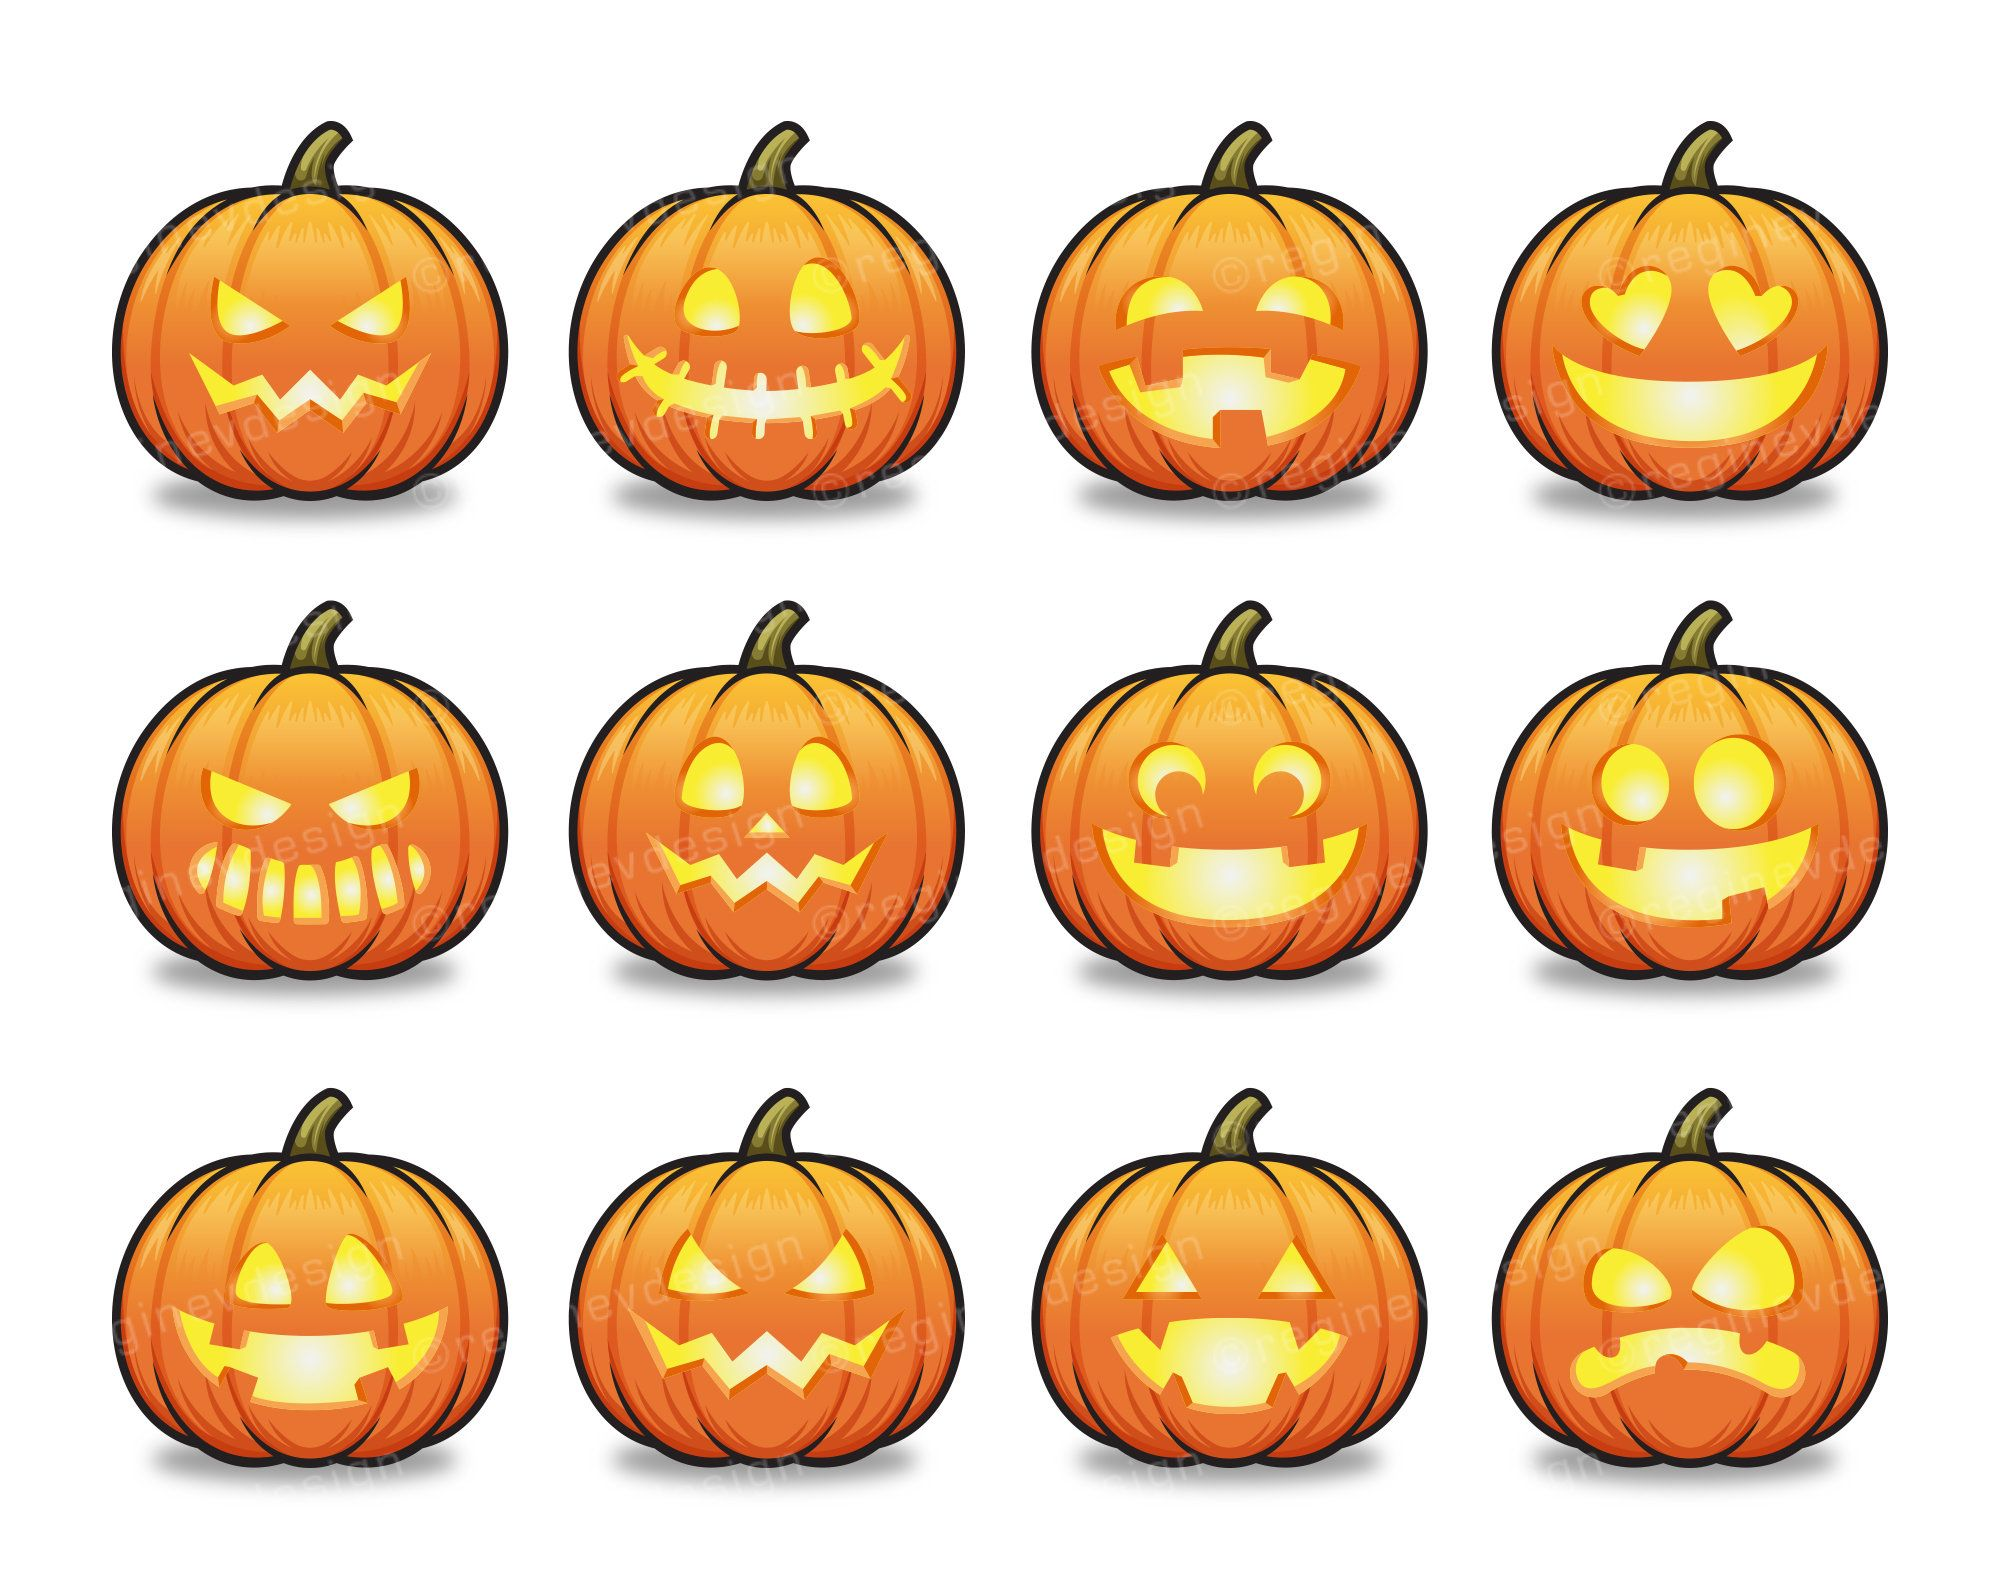 Halloween Jack o' Lantern Clipart, Scary Pumpkin Cartoon